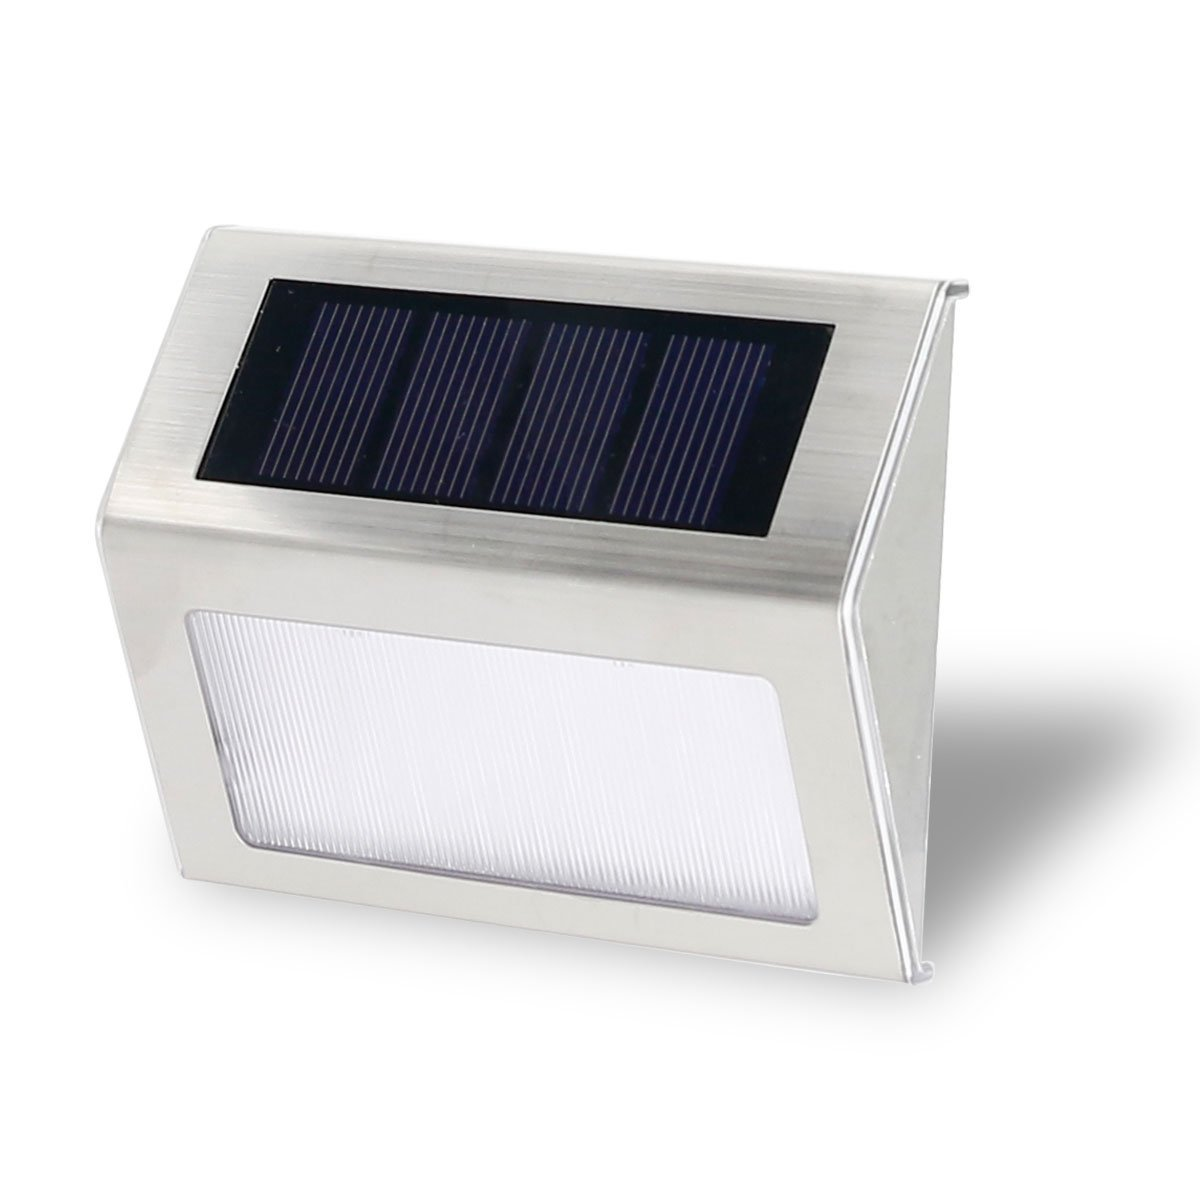 Best solar deck step lights ledwatcher lightess outdoor solar deck lights aloadofball Gallery